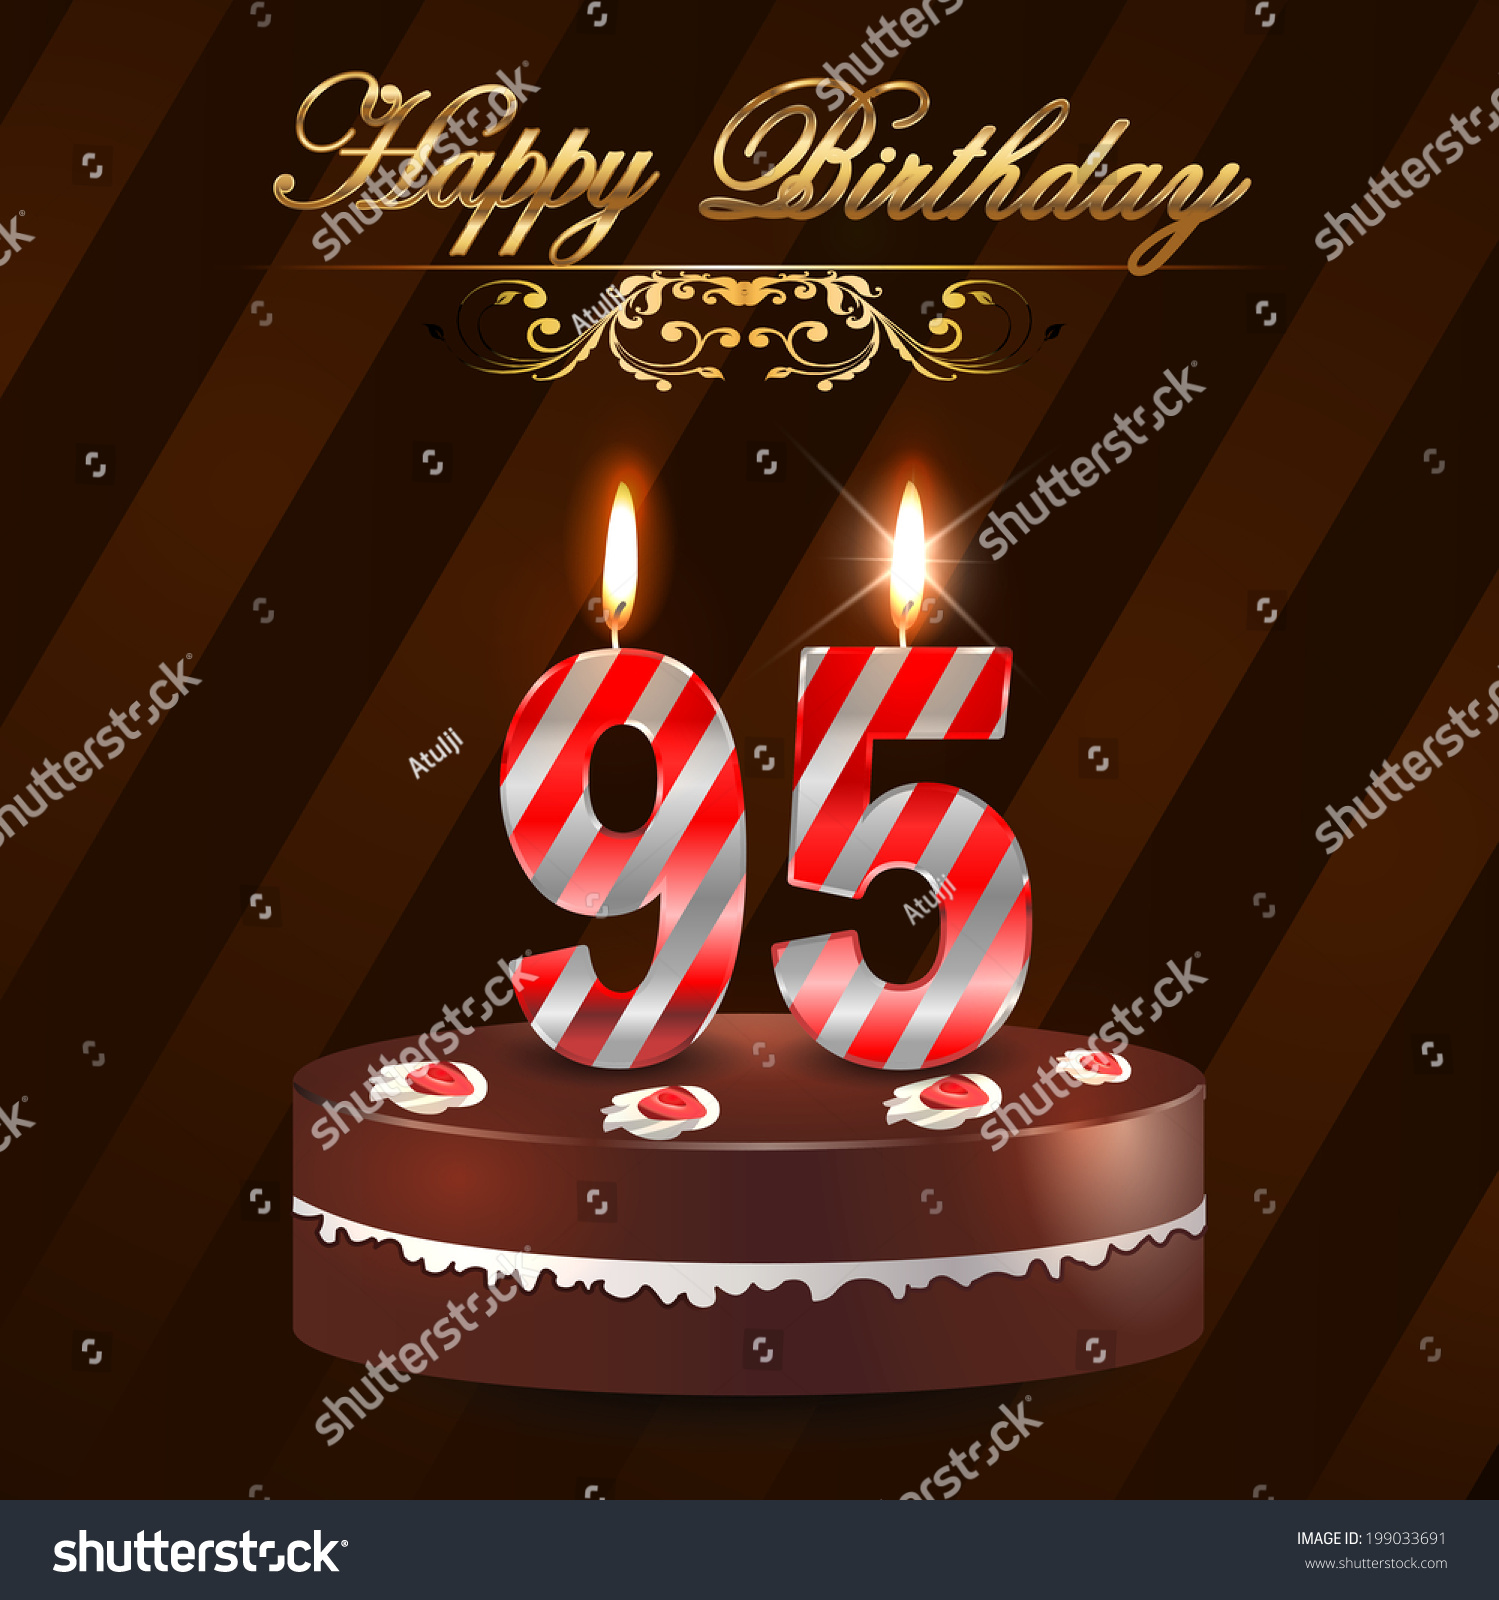 95th birthday card sayings ; stock-vector--year-happy-birthday-card-with-cake-and-candles-th-birthday-vector-eps-199033691